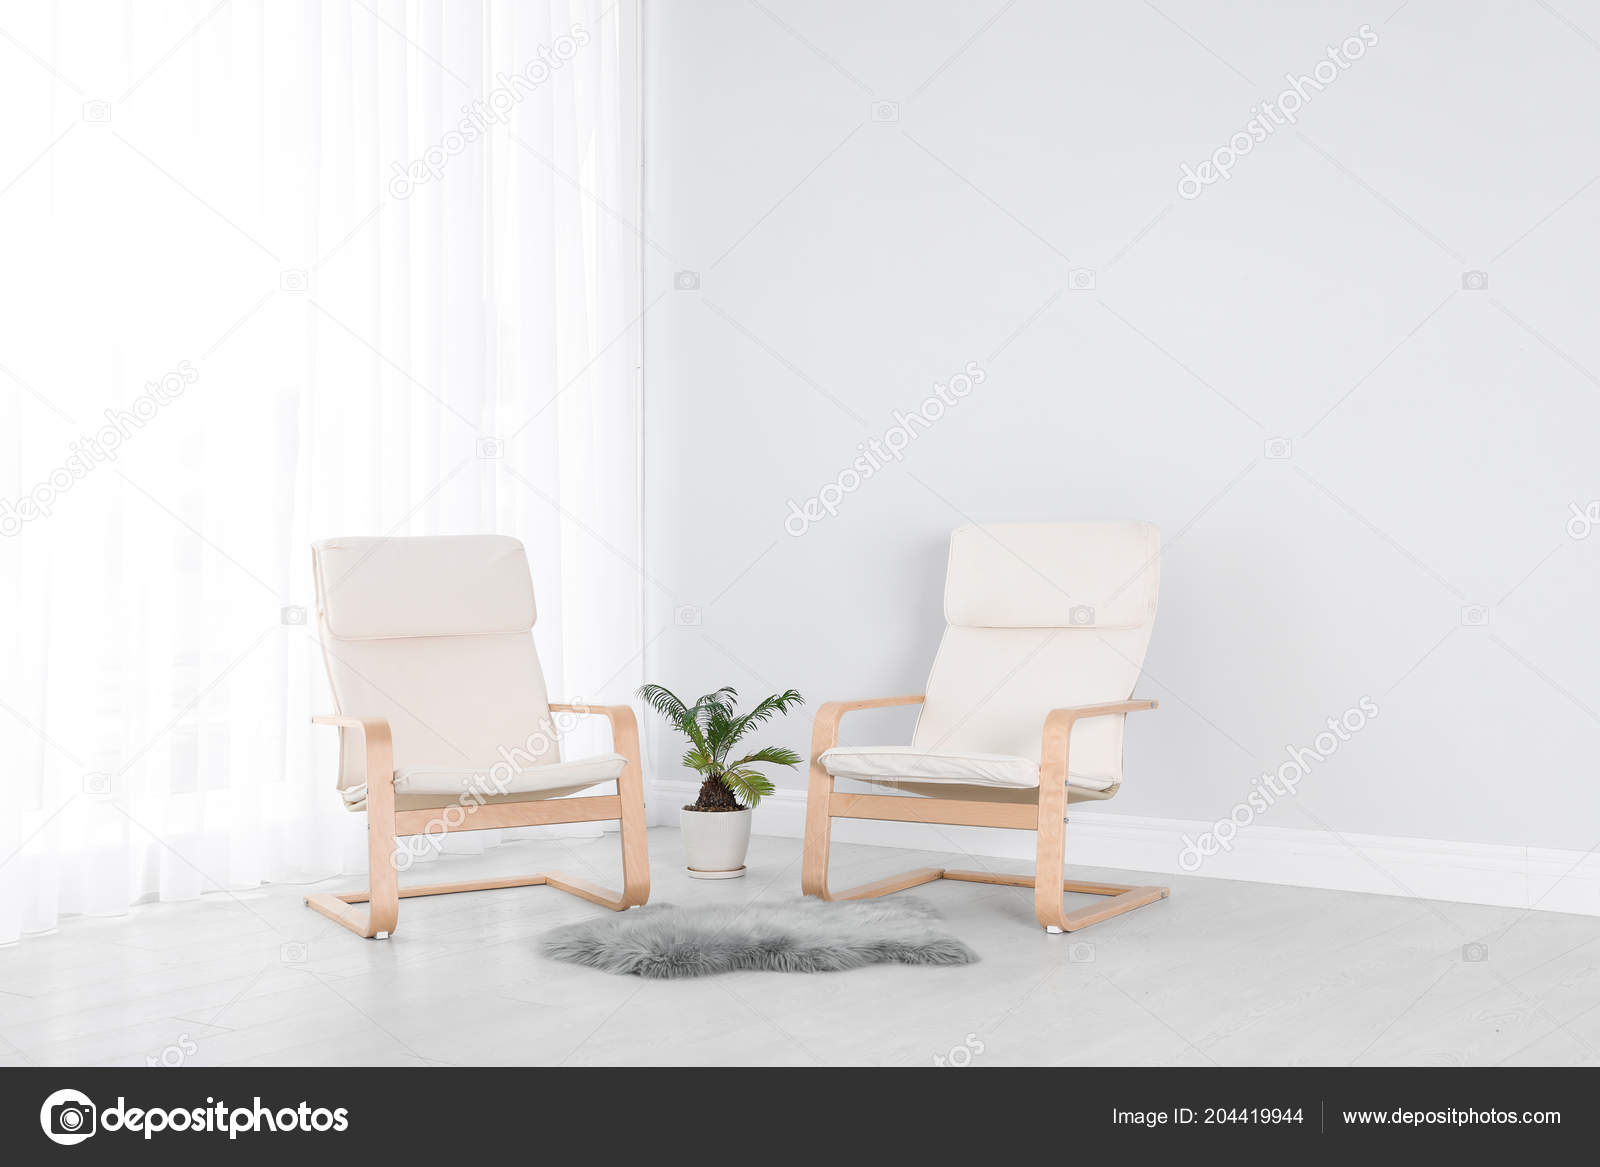 depositphotos stock photo elegant room interior stylish fortable